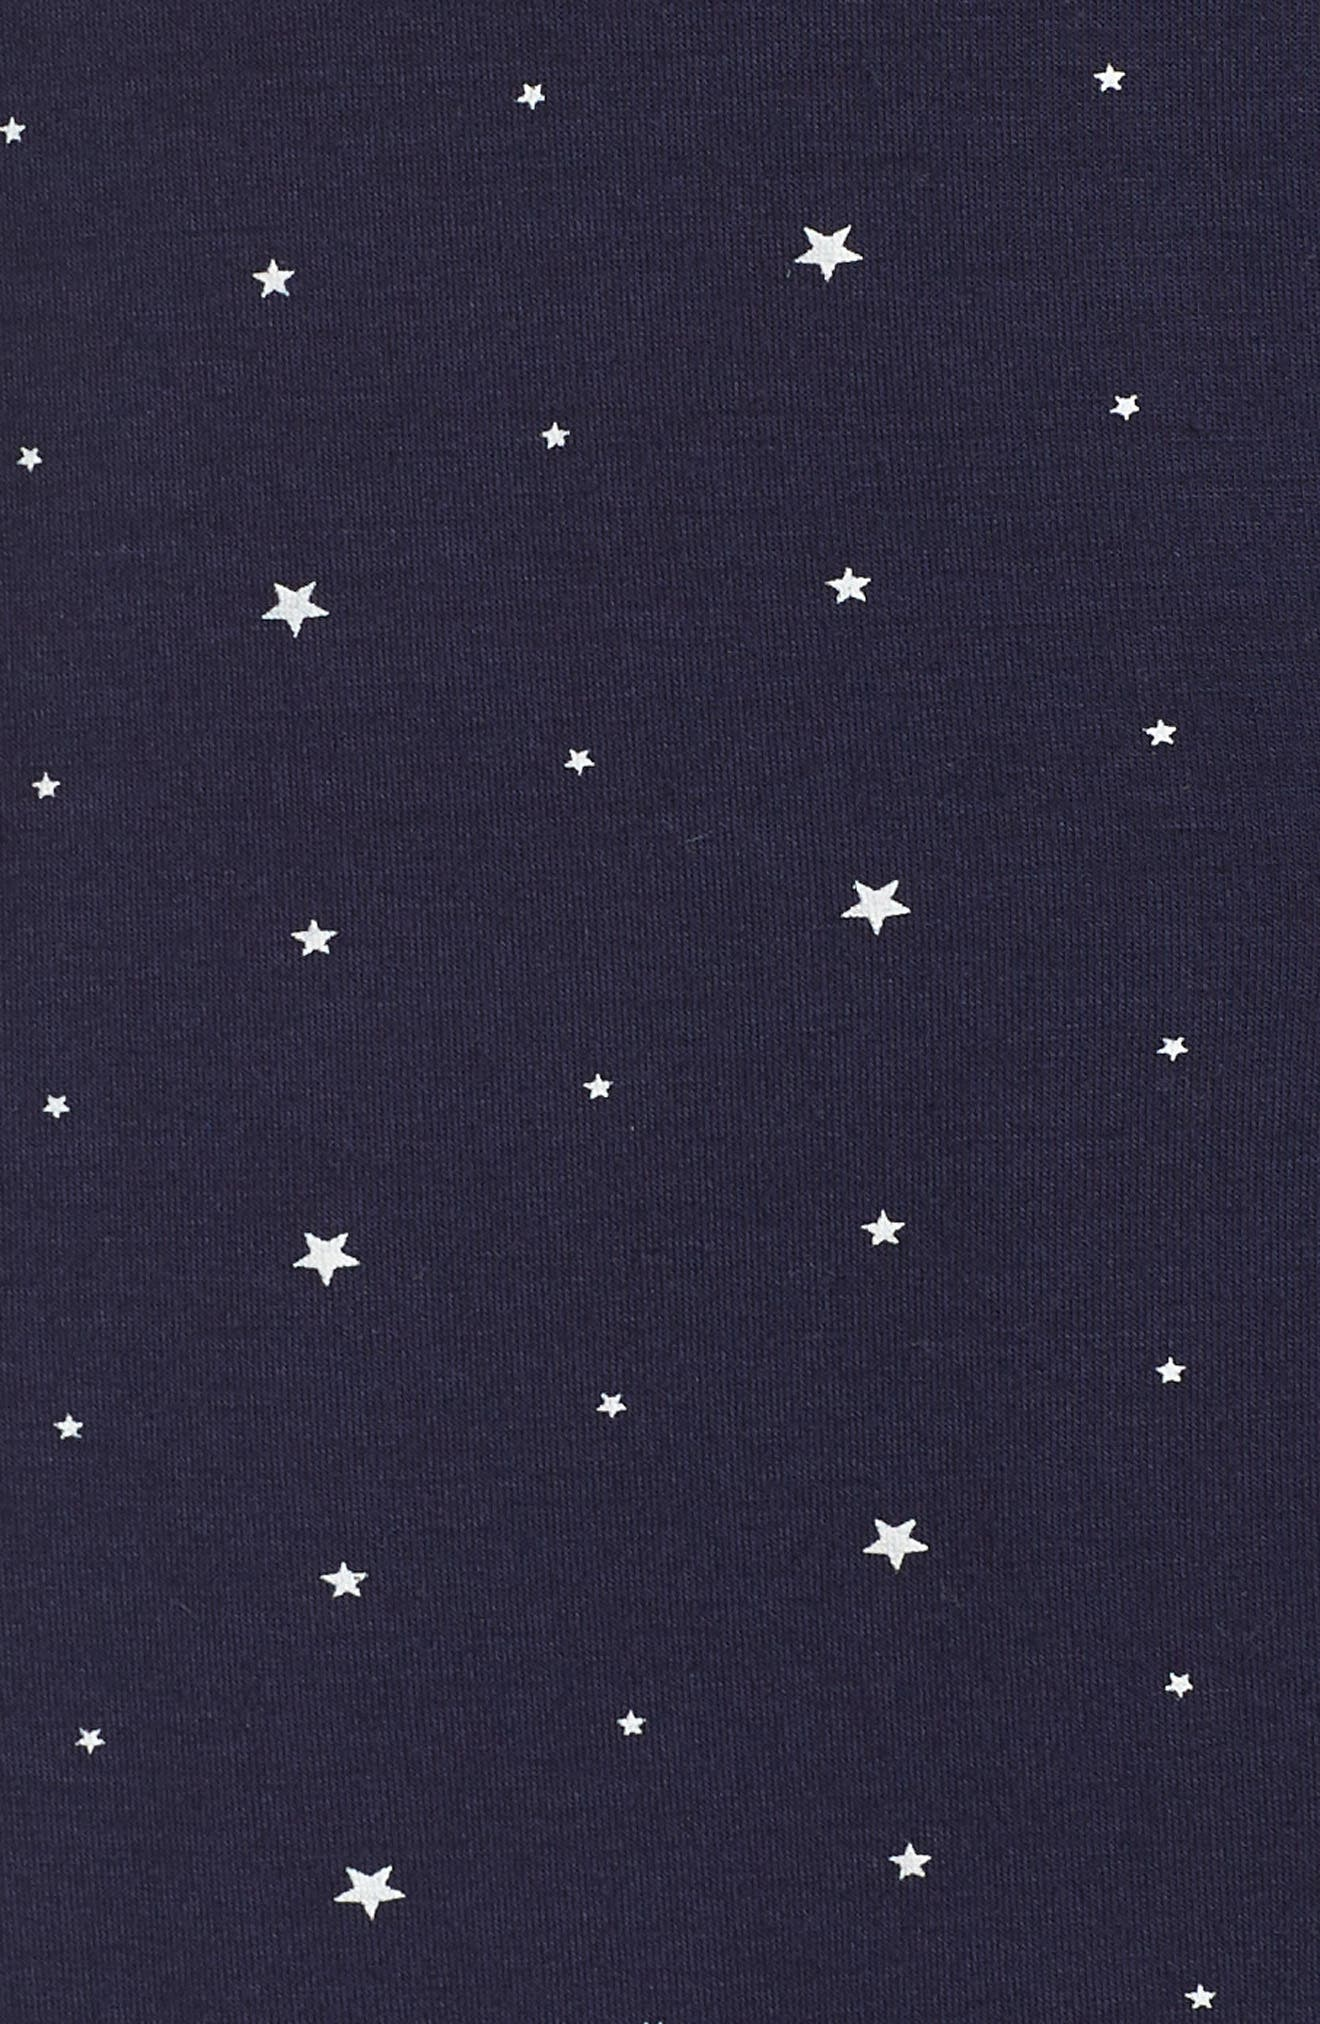 Sleep Chic Pajamas,                             Alternate thumbnail 5, color,                             NORTHER STARS/ IVORY